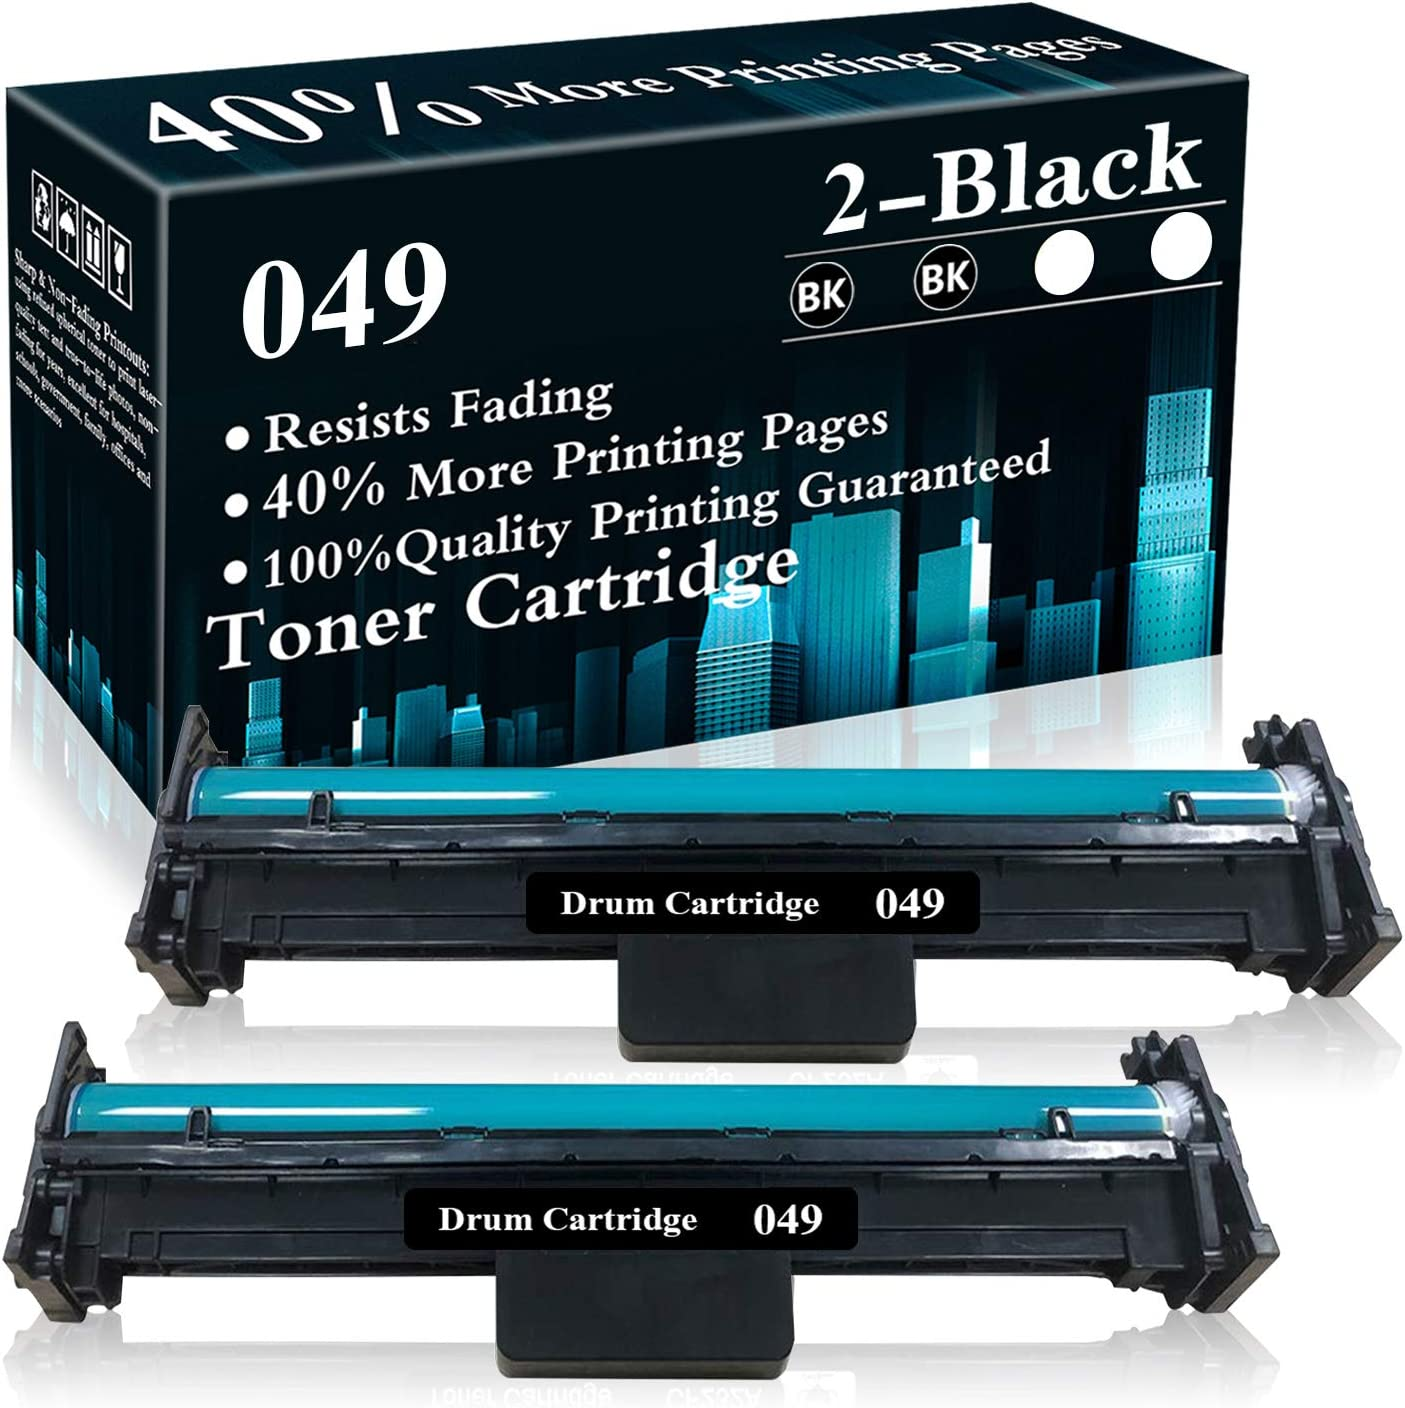 2 Pack 049 Black Drum Unit Replacement for Canon ImageCLASS MF113W LBP113W MF110/LBP110 Series i-SENSYS MF113W LBP113W MF110/LBP110 Series Printer,Sold by TopInk